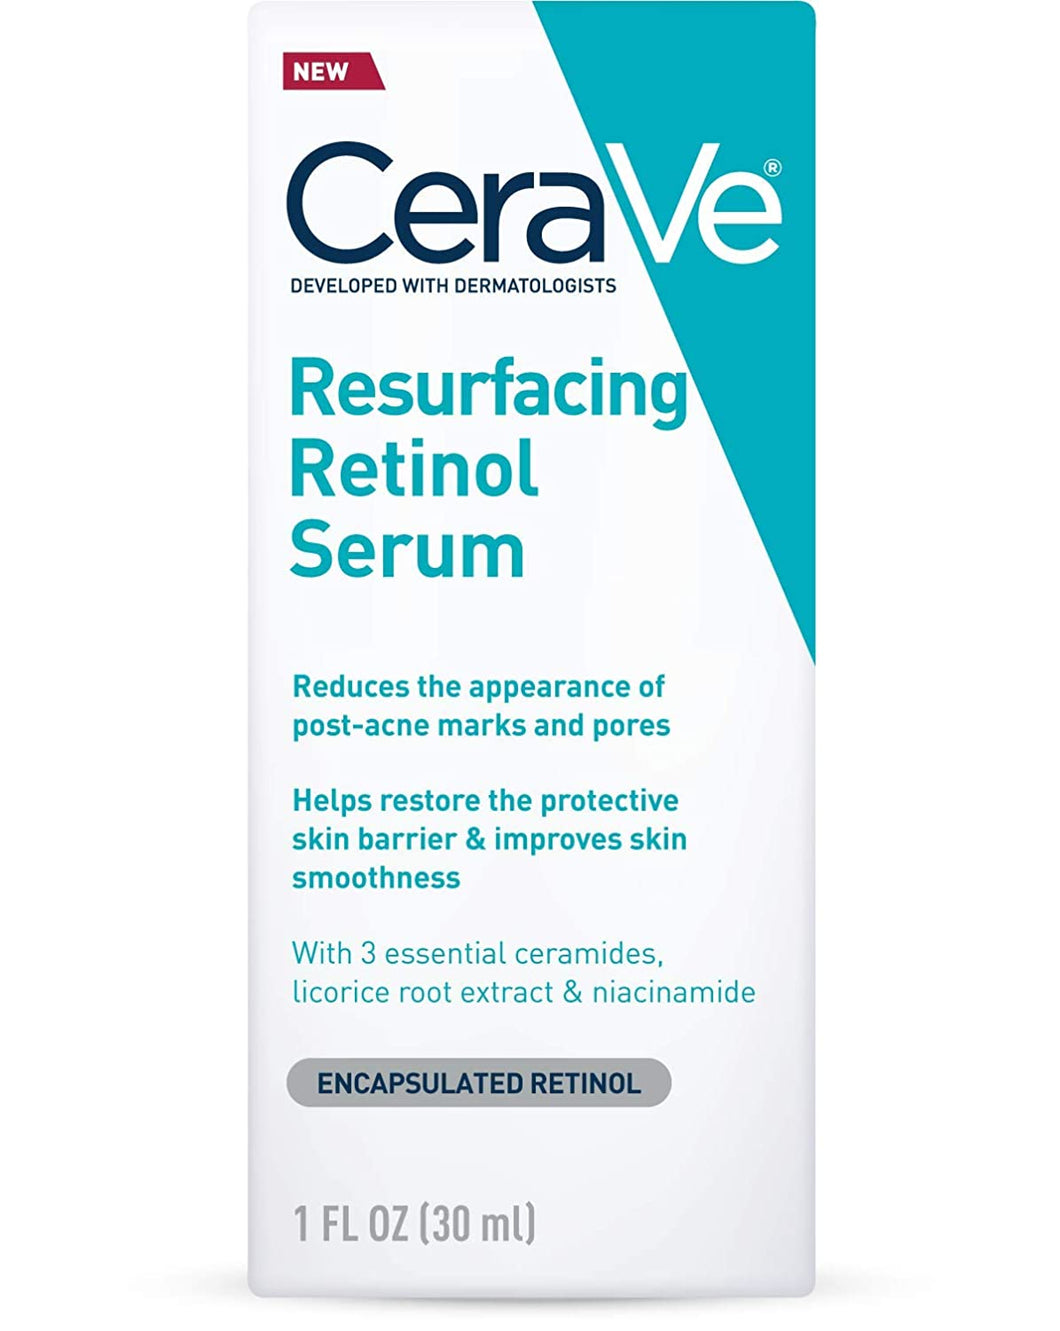 CeraVe Retinol Serum for Post-Acne Marks and Skin Texture 1 fl oz